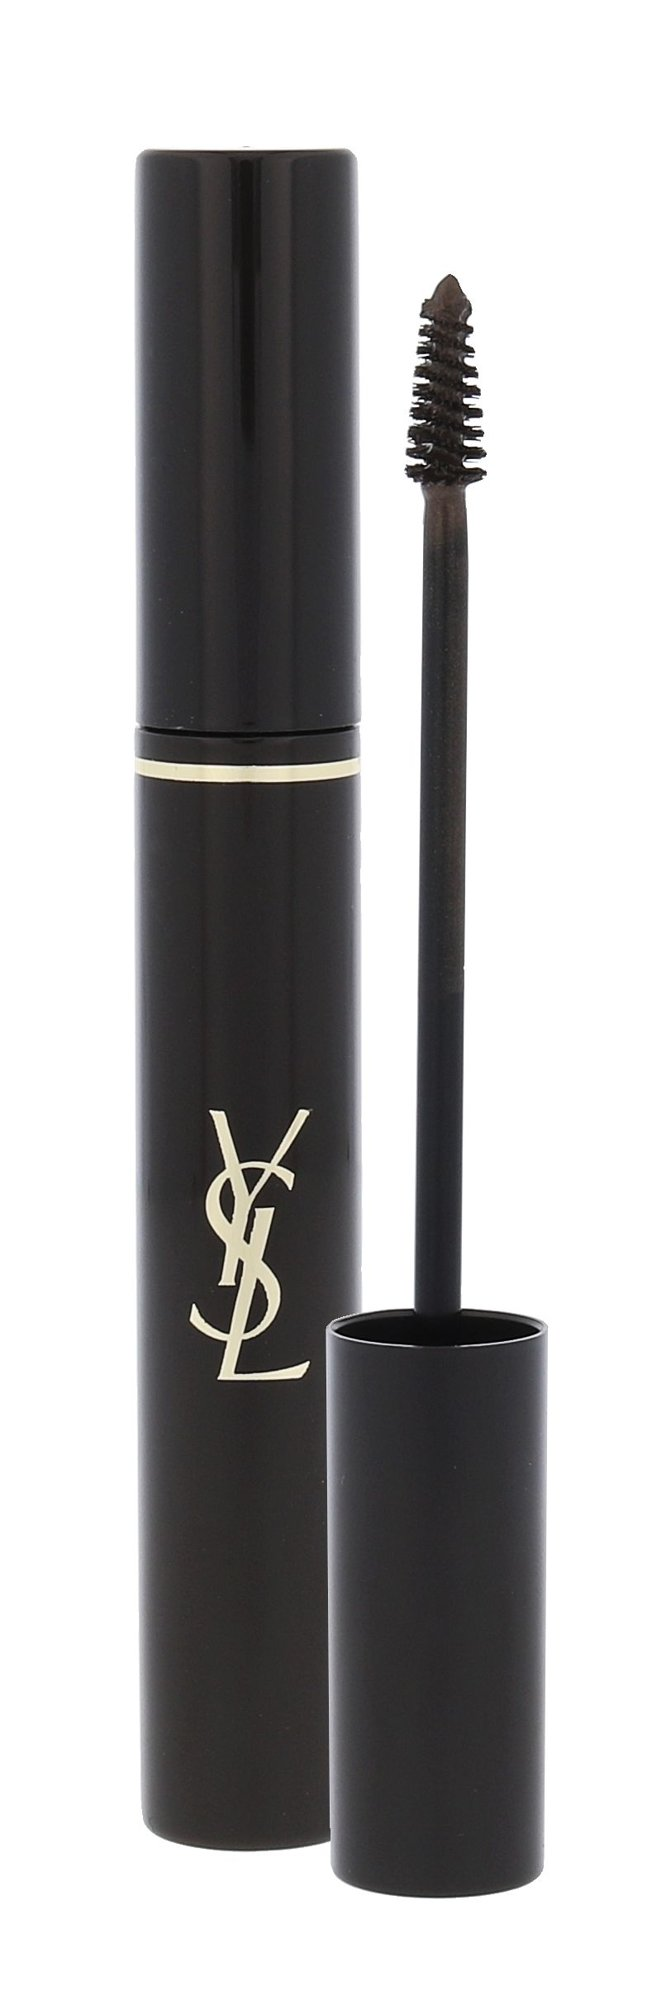 Yves Saint Laurent Couture Brow Shaper Mascara Cosmetic 7,7ml 1 Glazed Brown